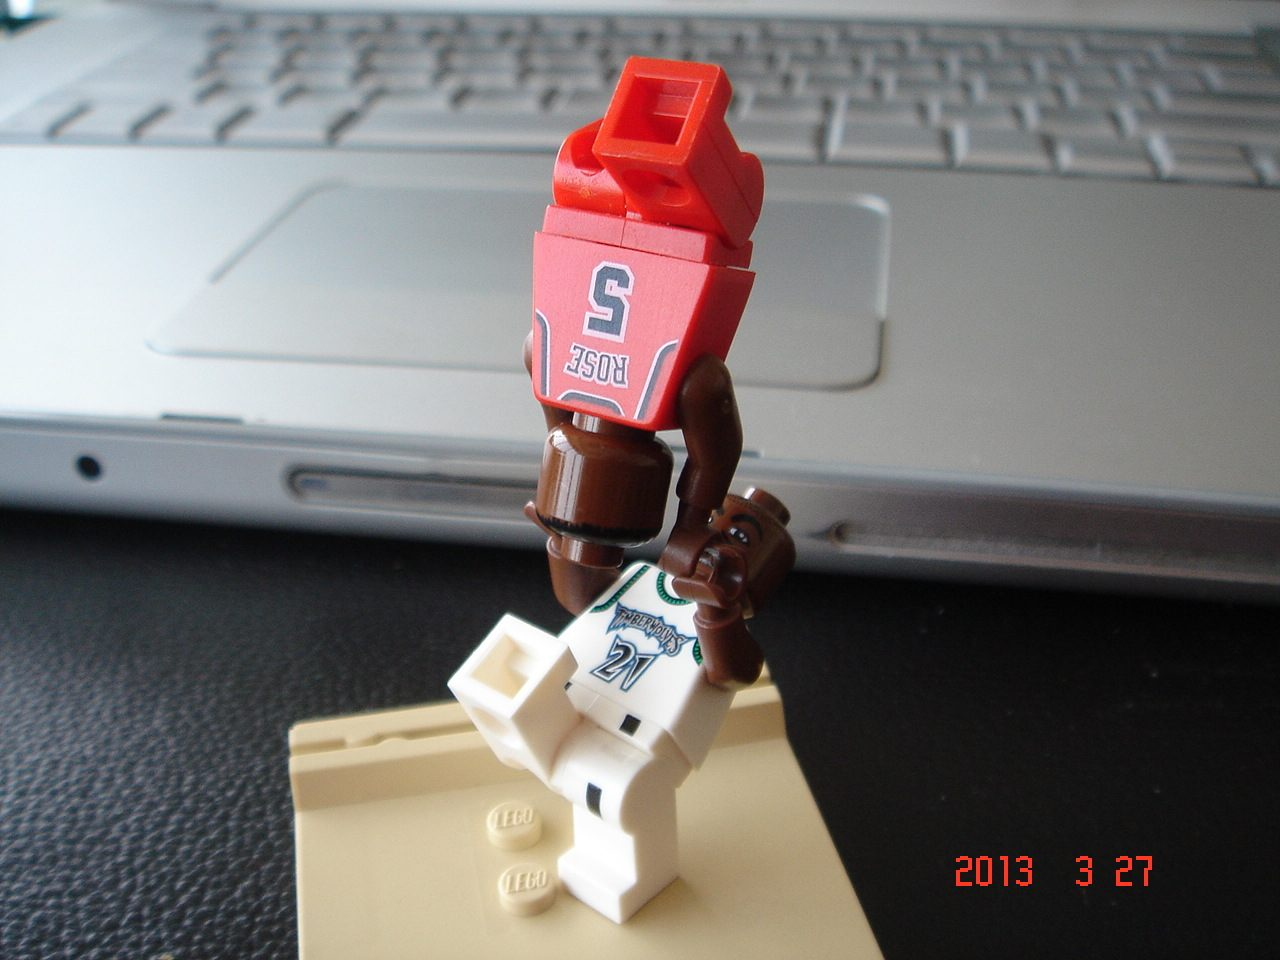 lego_nba-ucc-office_0327005.jpg